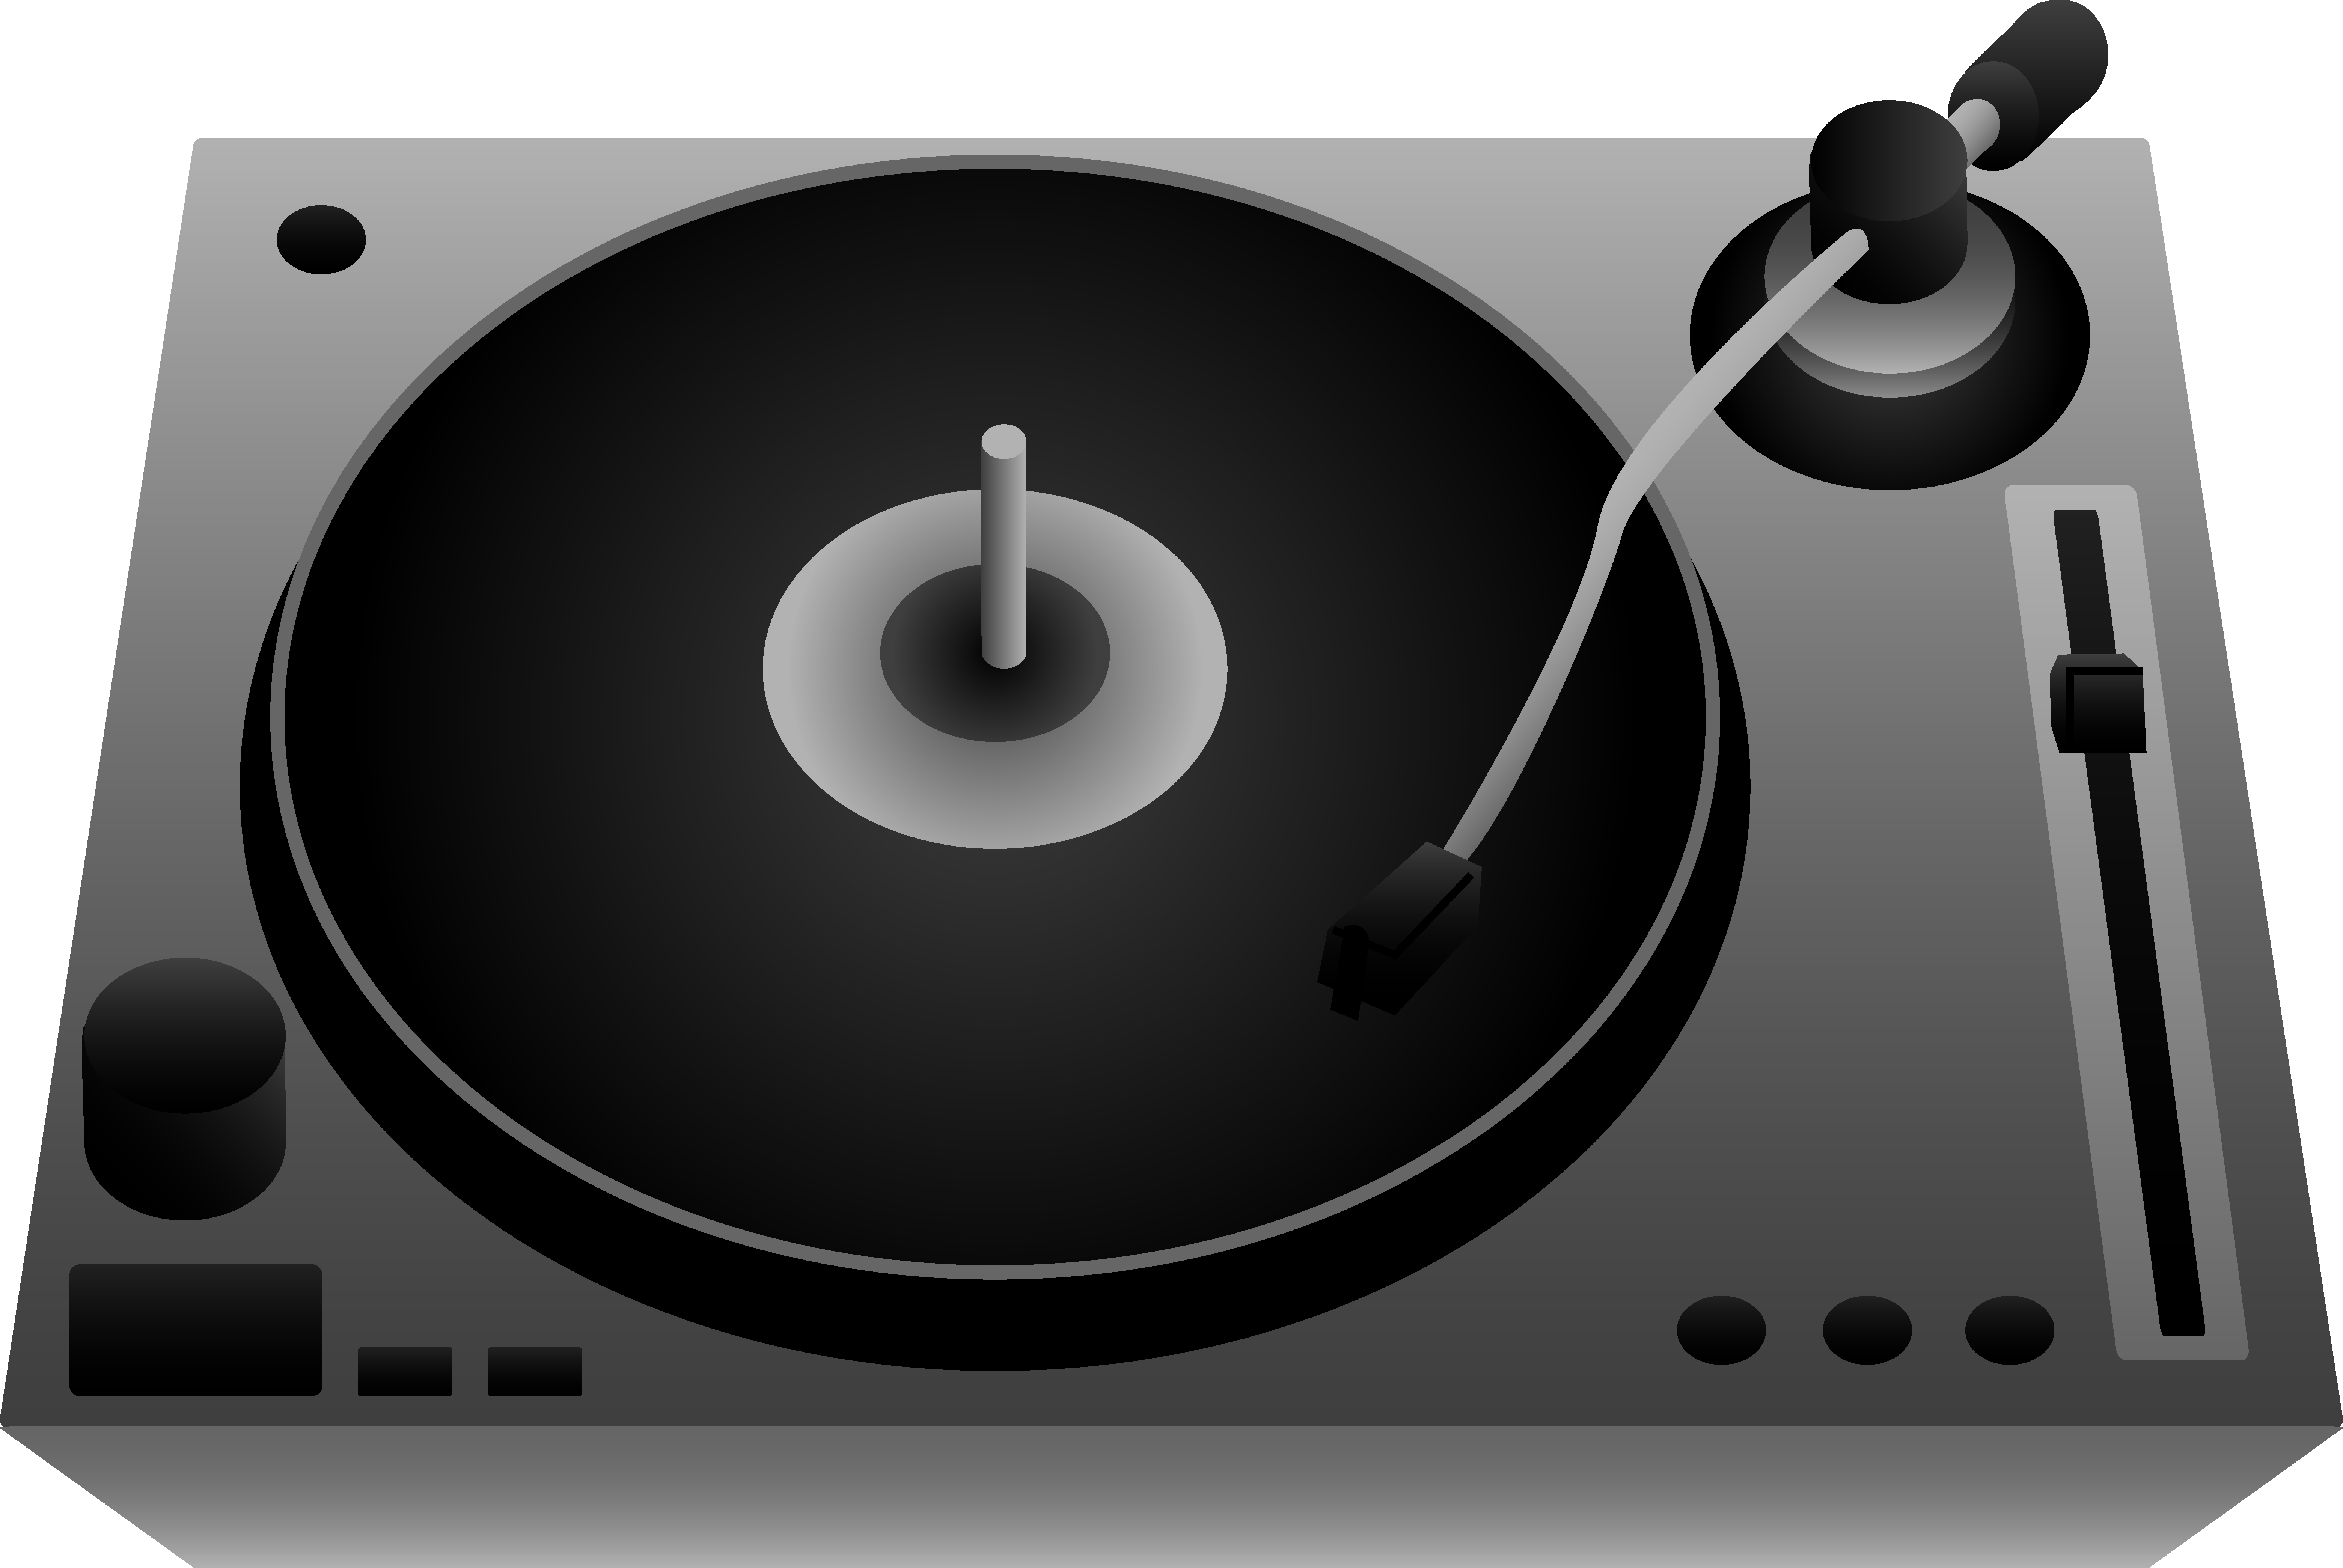 High Resolution Turntable Png Icon image #28614